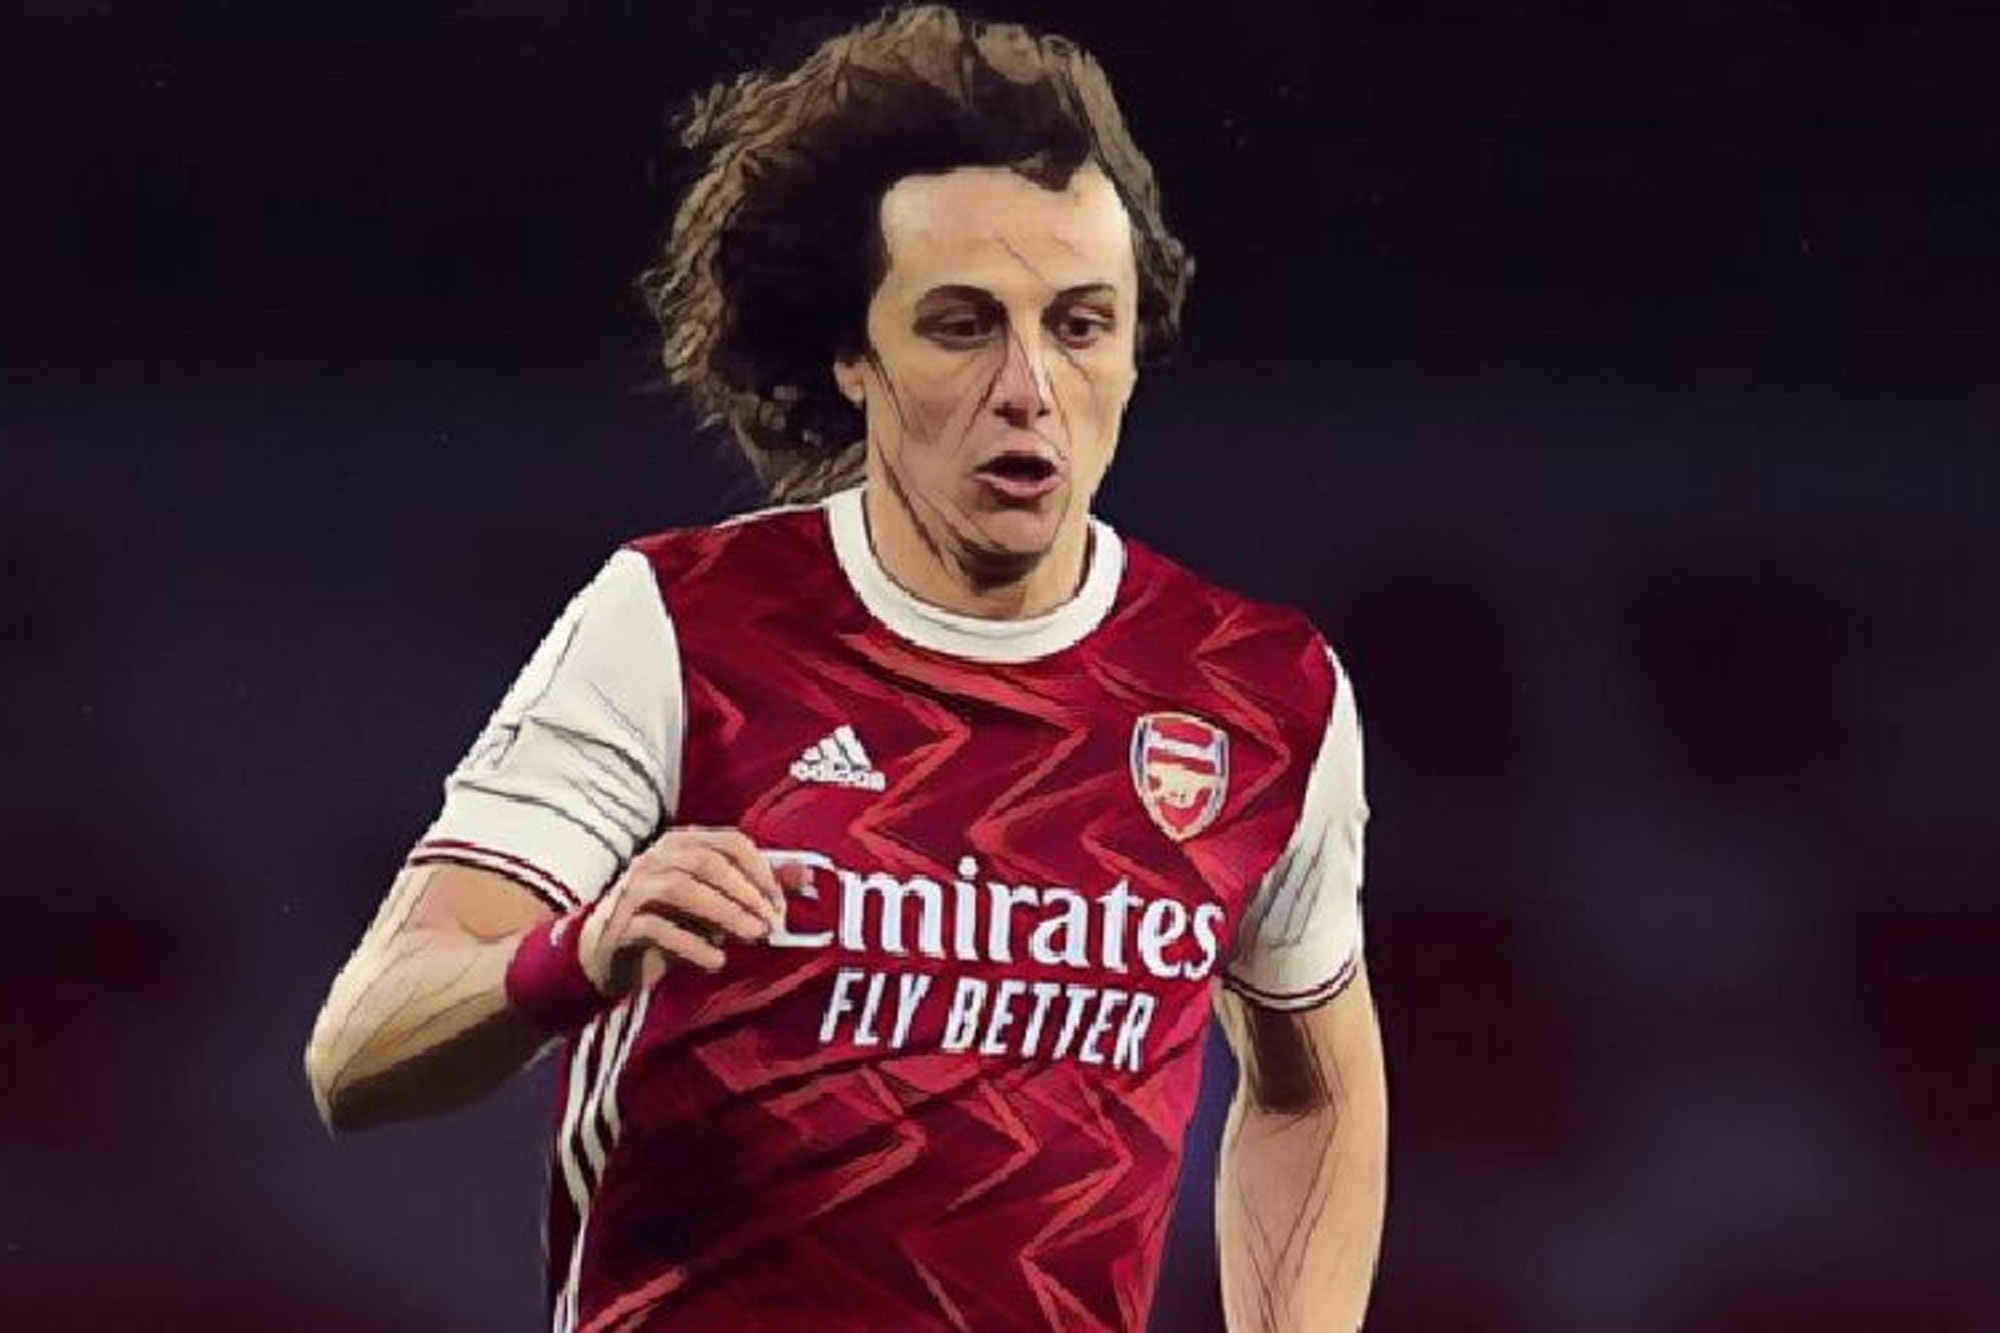 Arsenal set to hand David Luiz contract extension